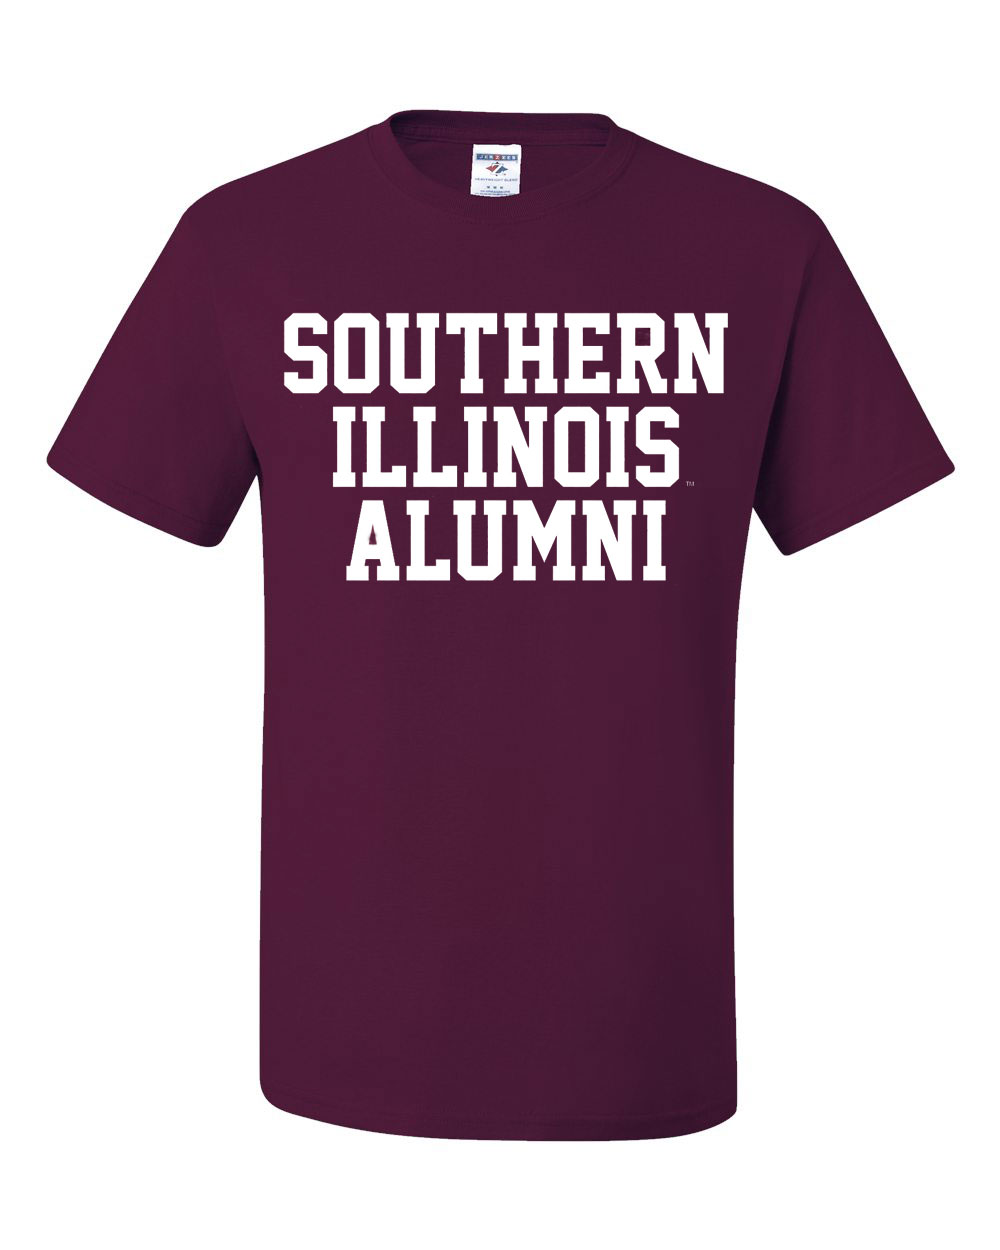 Image for the 710 BRANDED® BLOCK SOUTHERN ILLINOIS ALUMNI T-SHIRT product